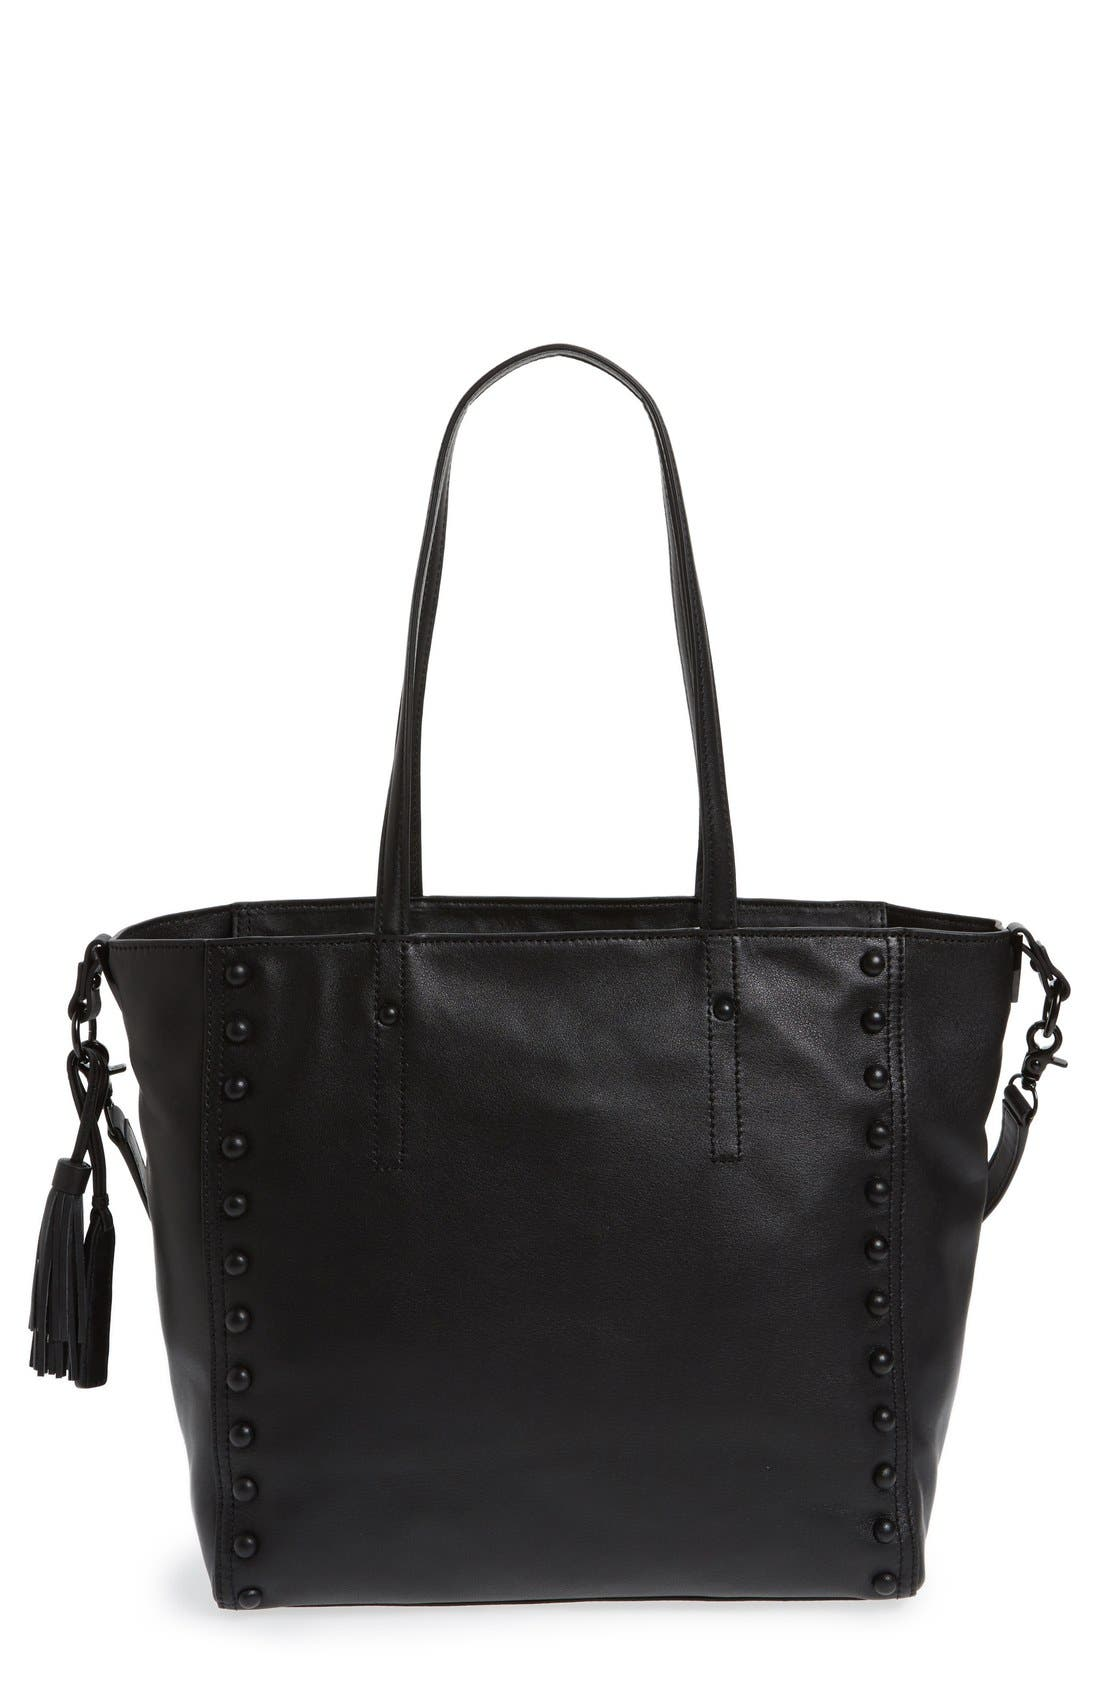 LOEFFLER RANDALL Studded Leather Tote, Main, color, 001